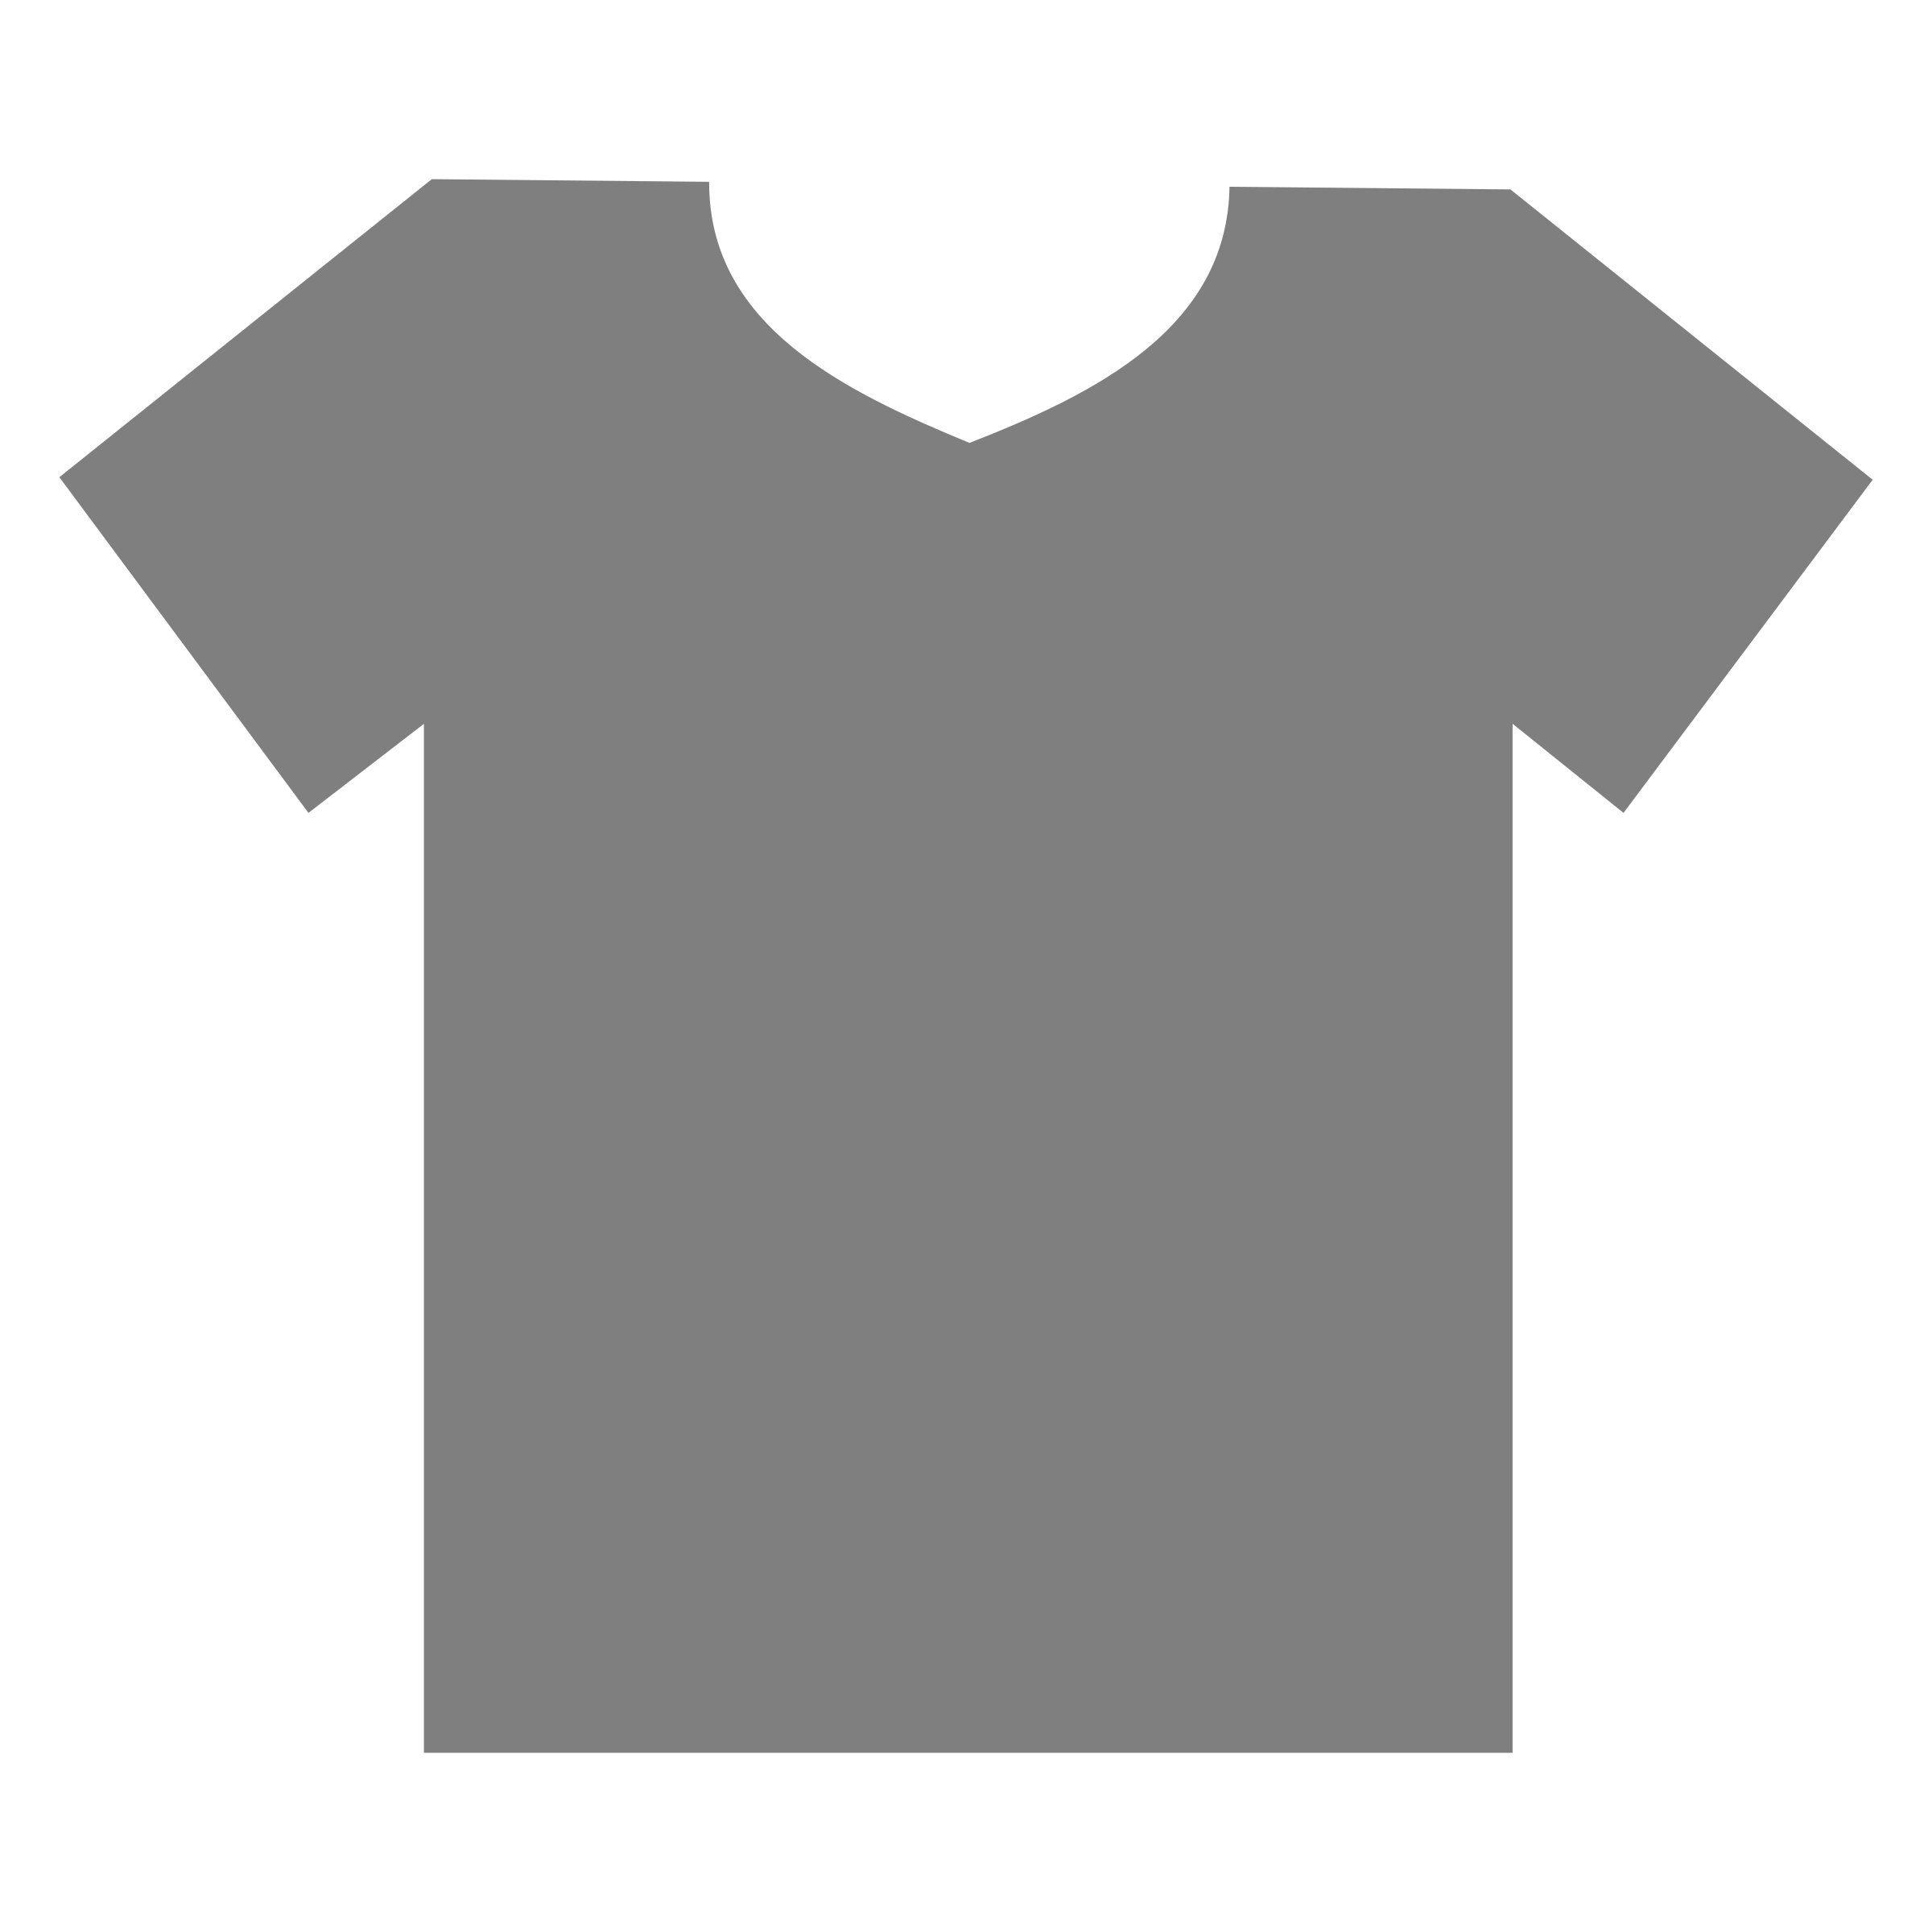 Tshirt svg blank. T shirt outline by